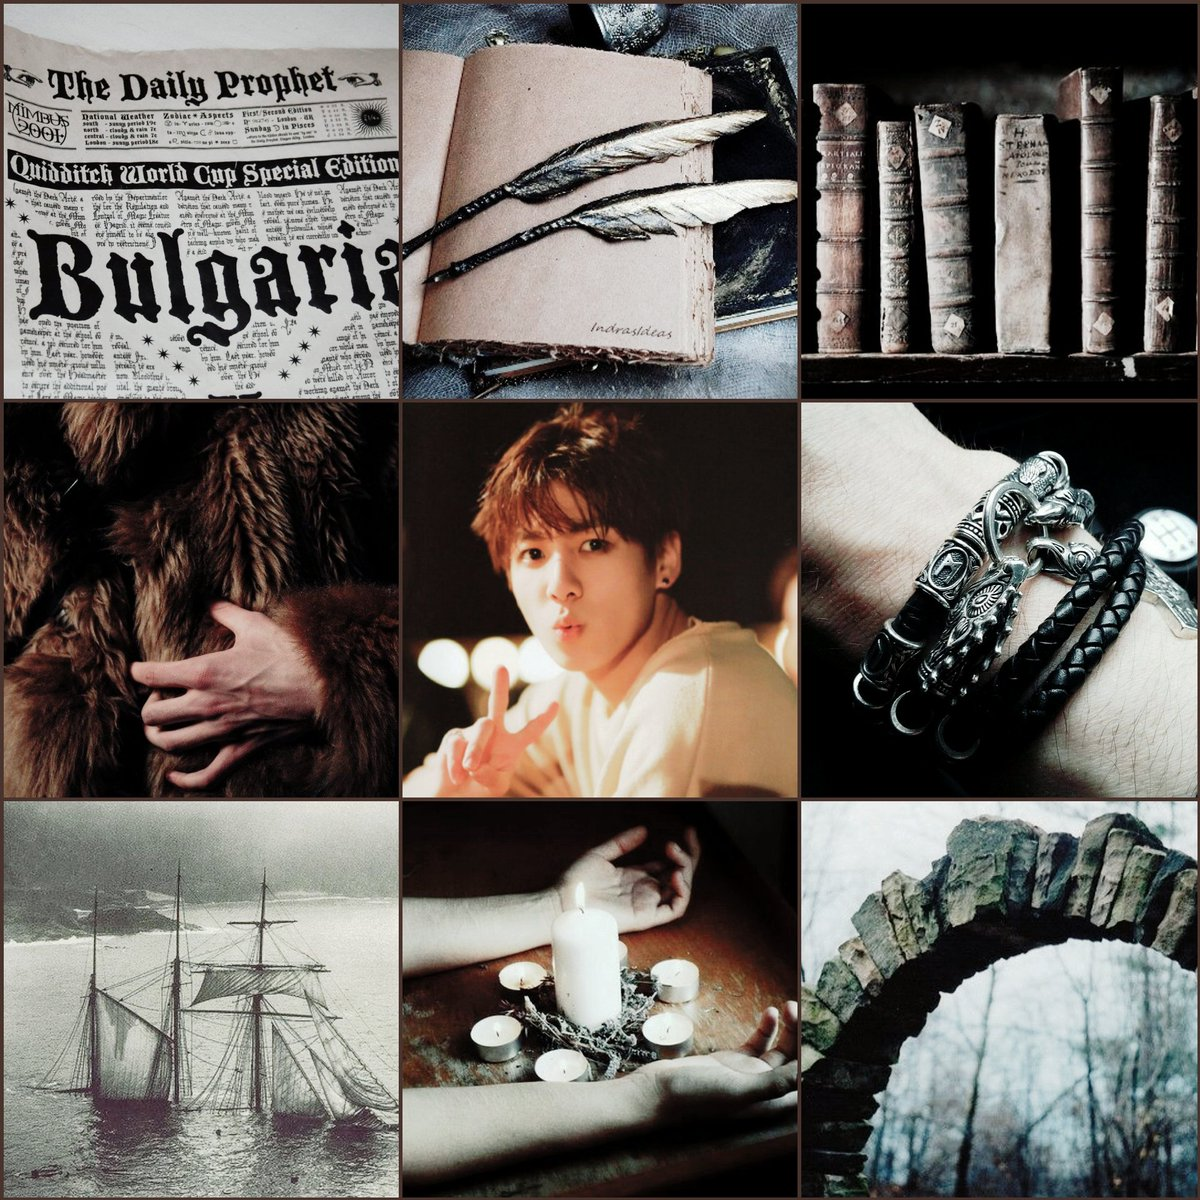 Cass On Twitter Beauxbatons Jimin And Durmstrang Jungkook Moodboards Inspired By Kooksoshook S Edits Ask hogwartshousehabits a question #beauxbaton #durmstrang. cass on twitter beauxbatons jimin